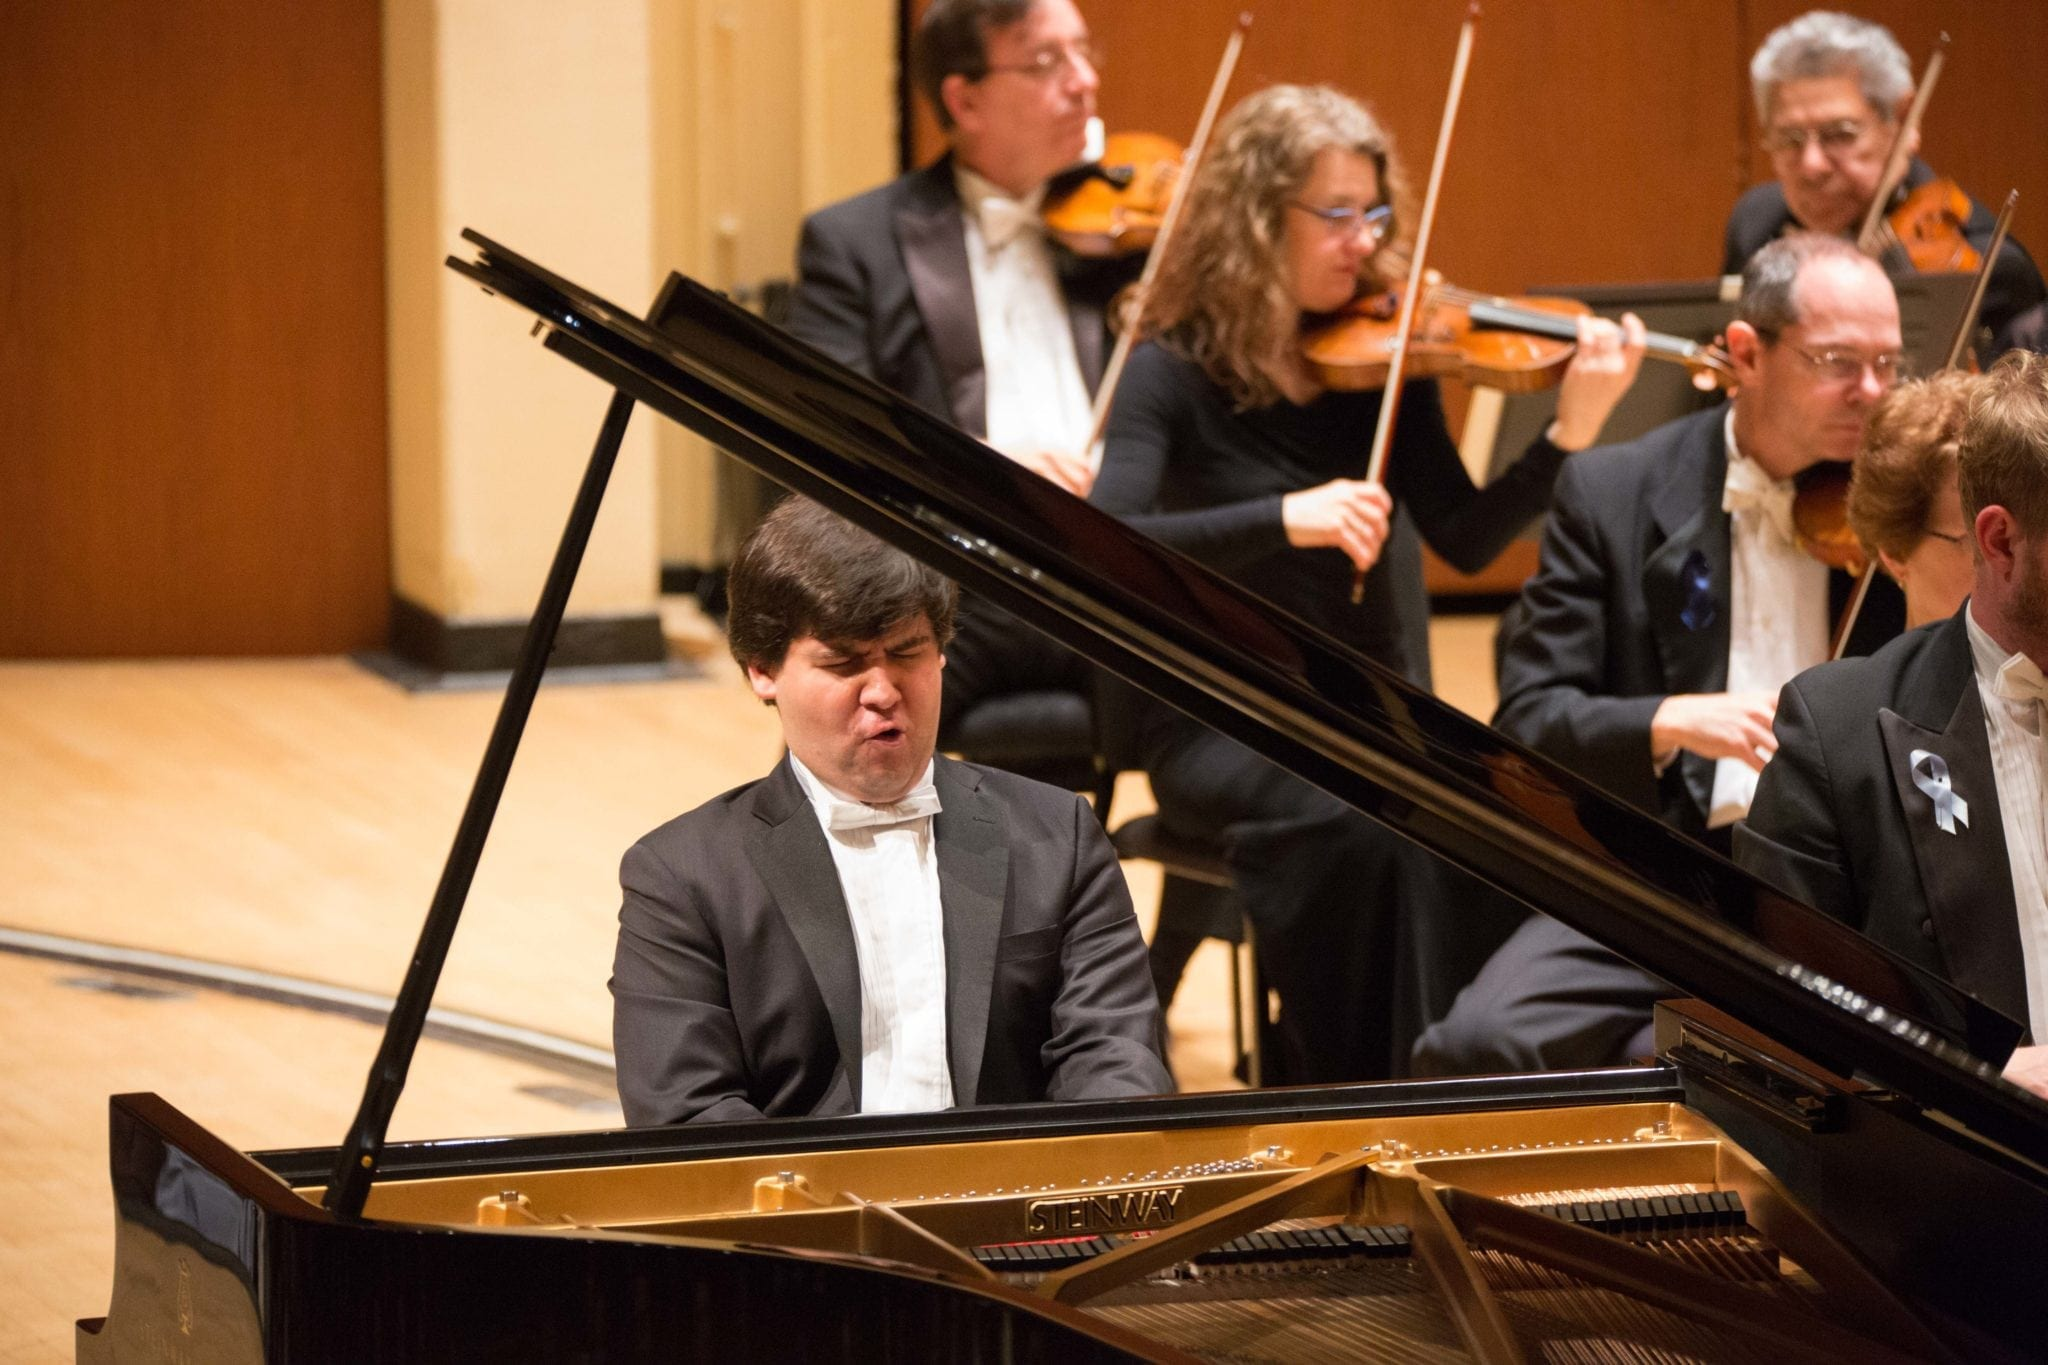 Pianist Vadym Kholodenko was impressive in his ASO debut.